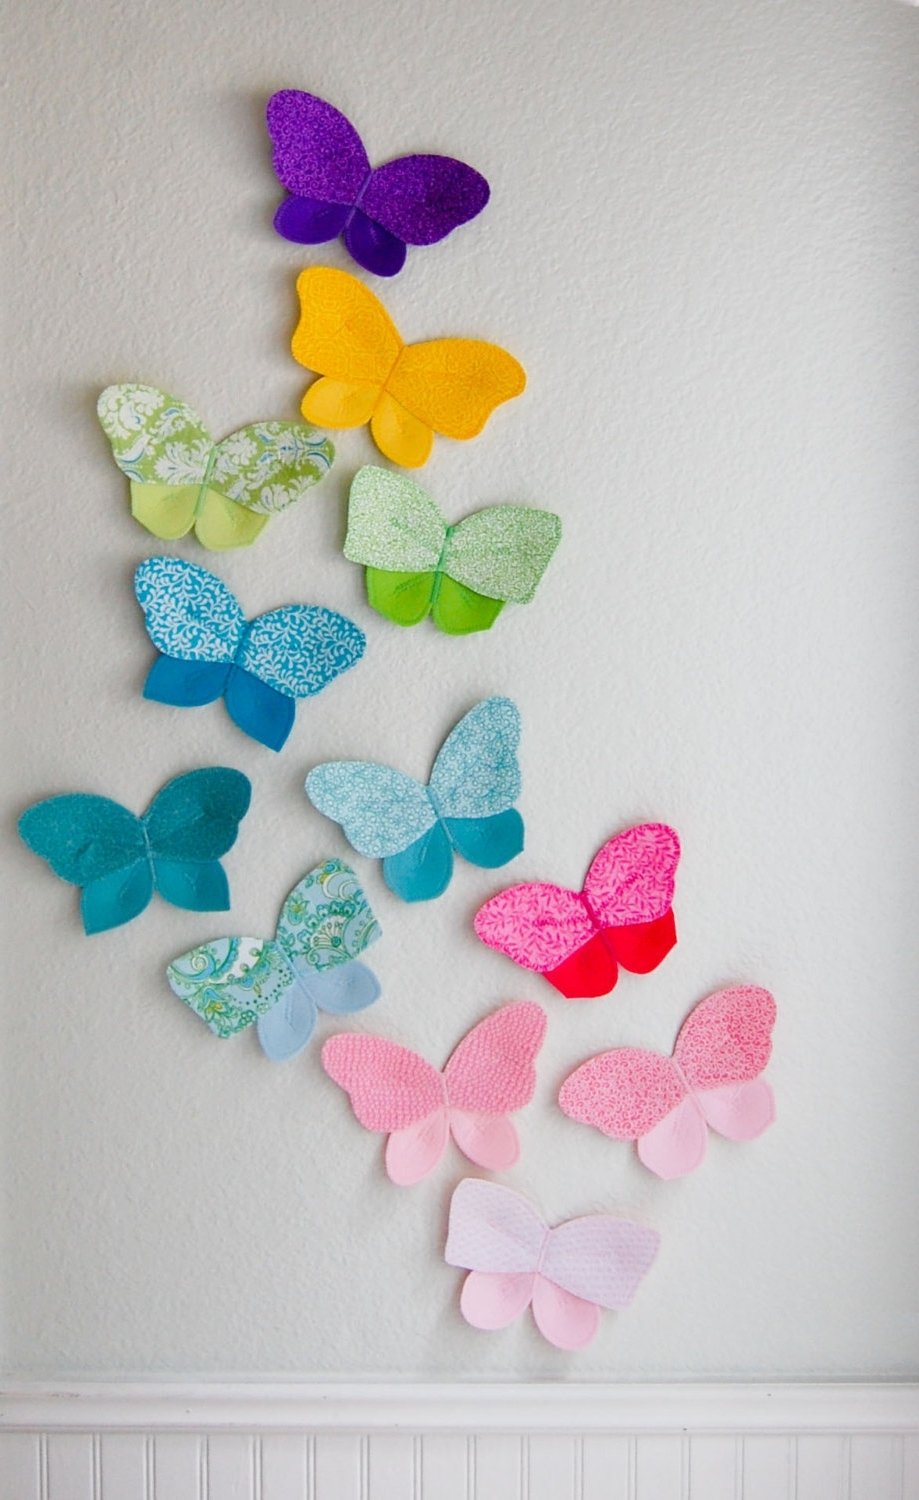 3D Fabric Butterfly, Wall Decor For Girls Room, Nursery Decor Within Favorite Fabric Butterfly Wall Art (View 3 of 15)